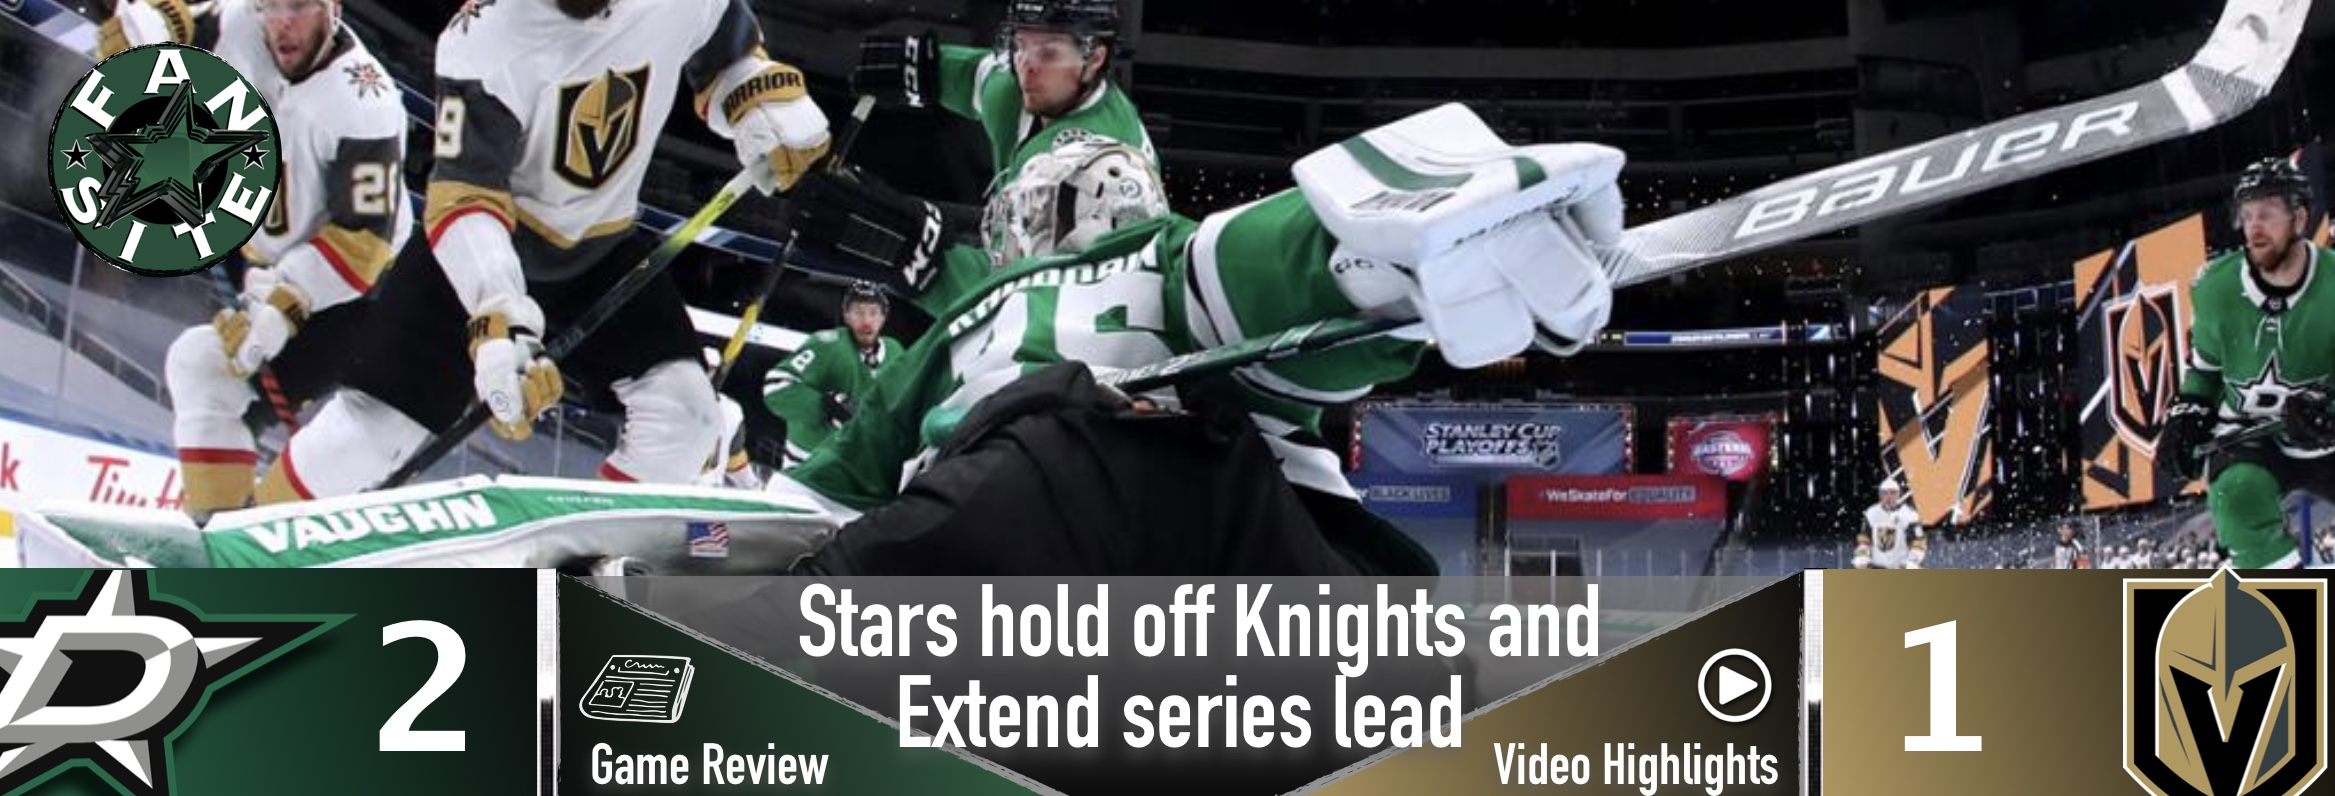 Stars hold off Knights and extend series lead